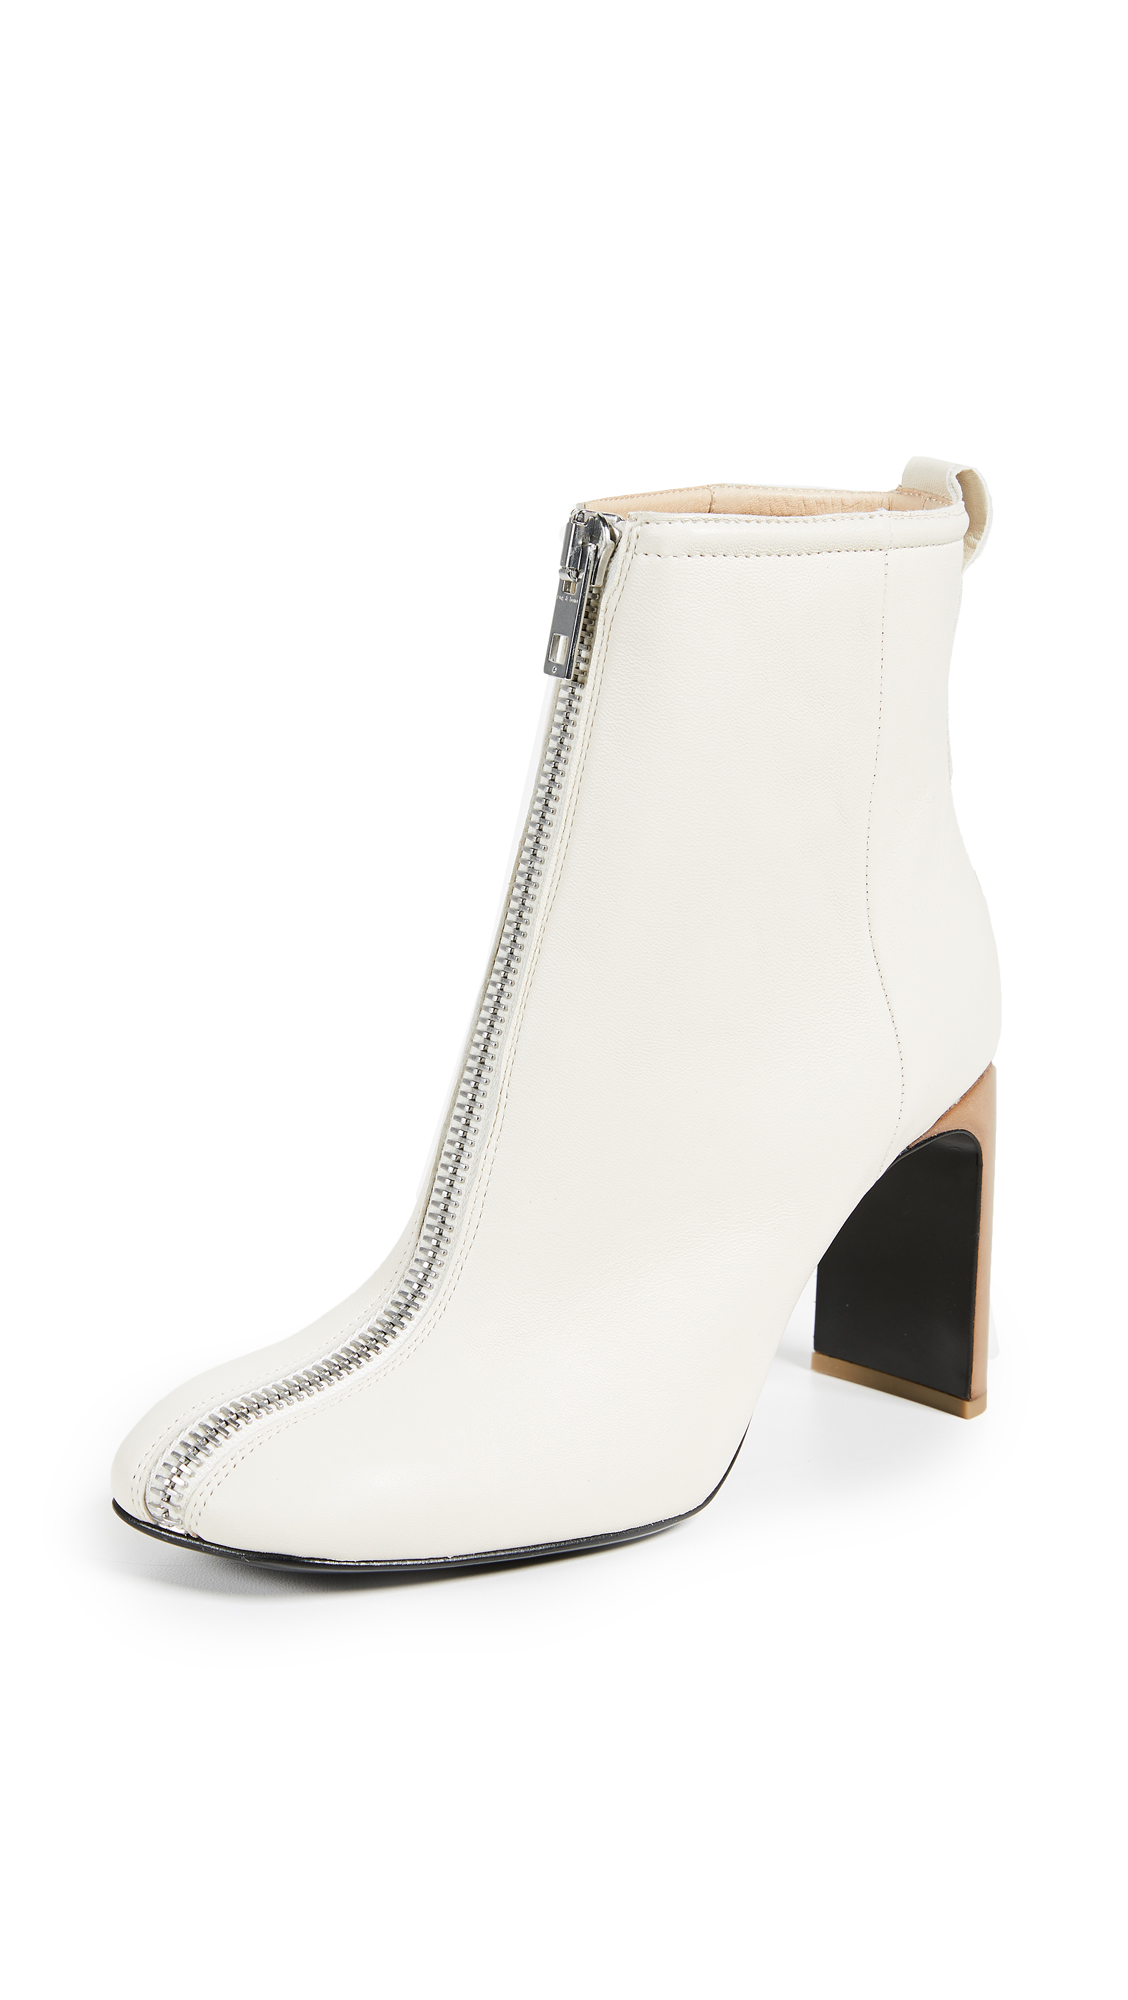 Rag & Bone Ellis Zip Booties